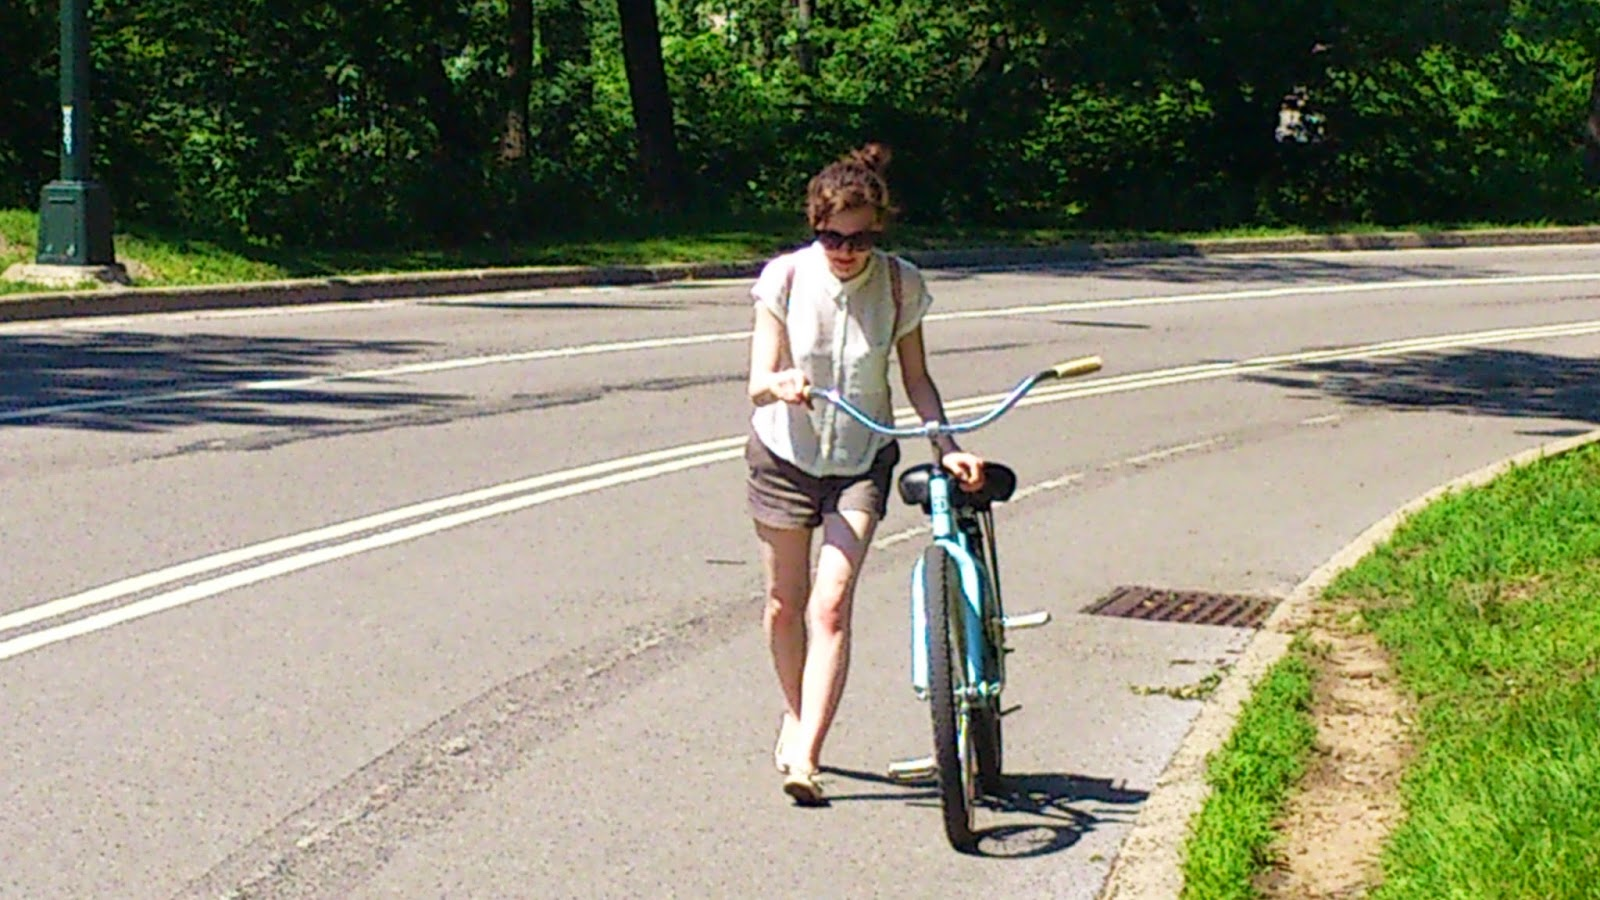 new york city central park bike uphill nature girl